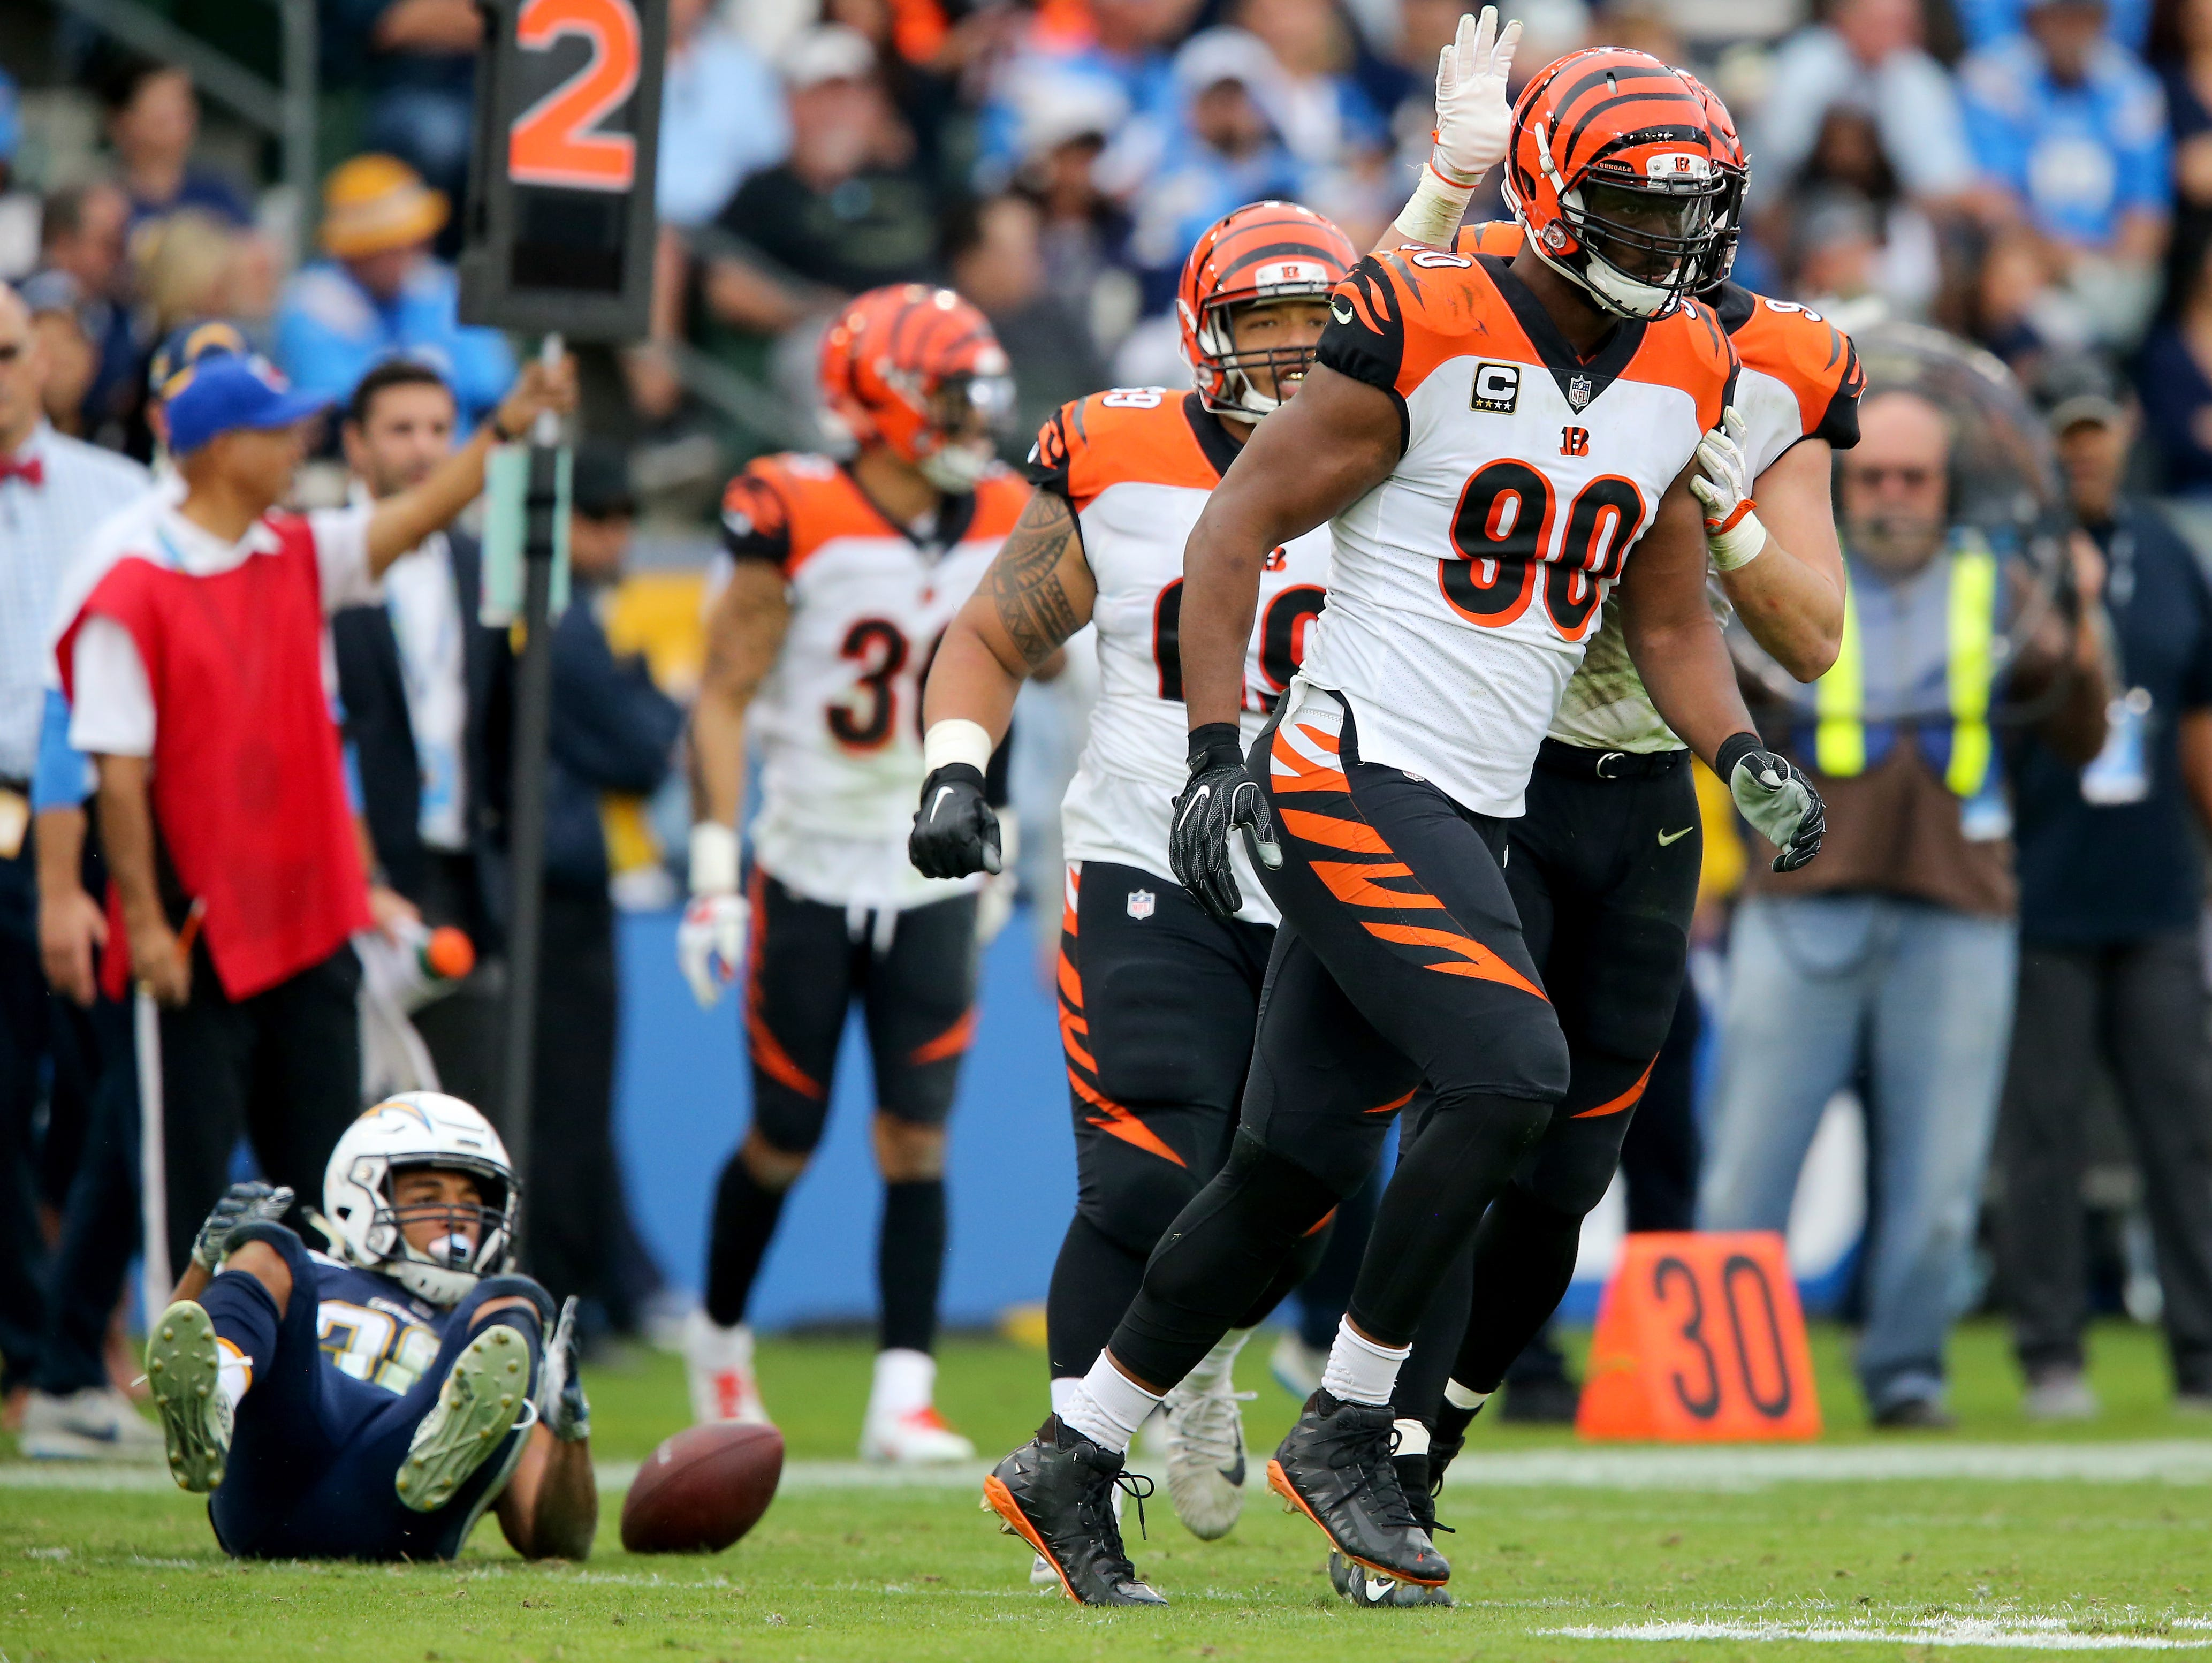 Cincinnati Bengals defensive end Michael Johnson (90) jogs back to the huddle after tackling Los Angeles Chargers running back Austin Ekeler (30), far left, for a loss in the fourth quarter of a Week 14 NFL football game, Sunday, Dec. 9, 2018, at StubHub Center in Carson, California. The Los Angeles Chargers won 26.21.